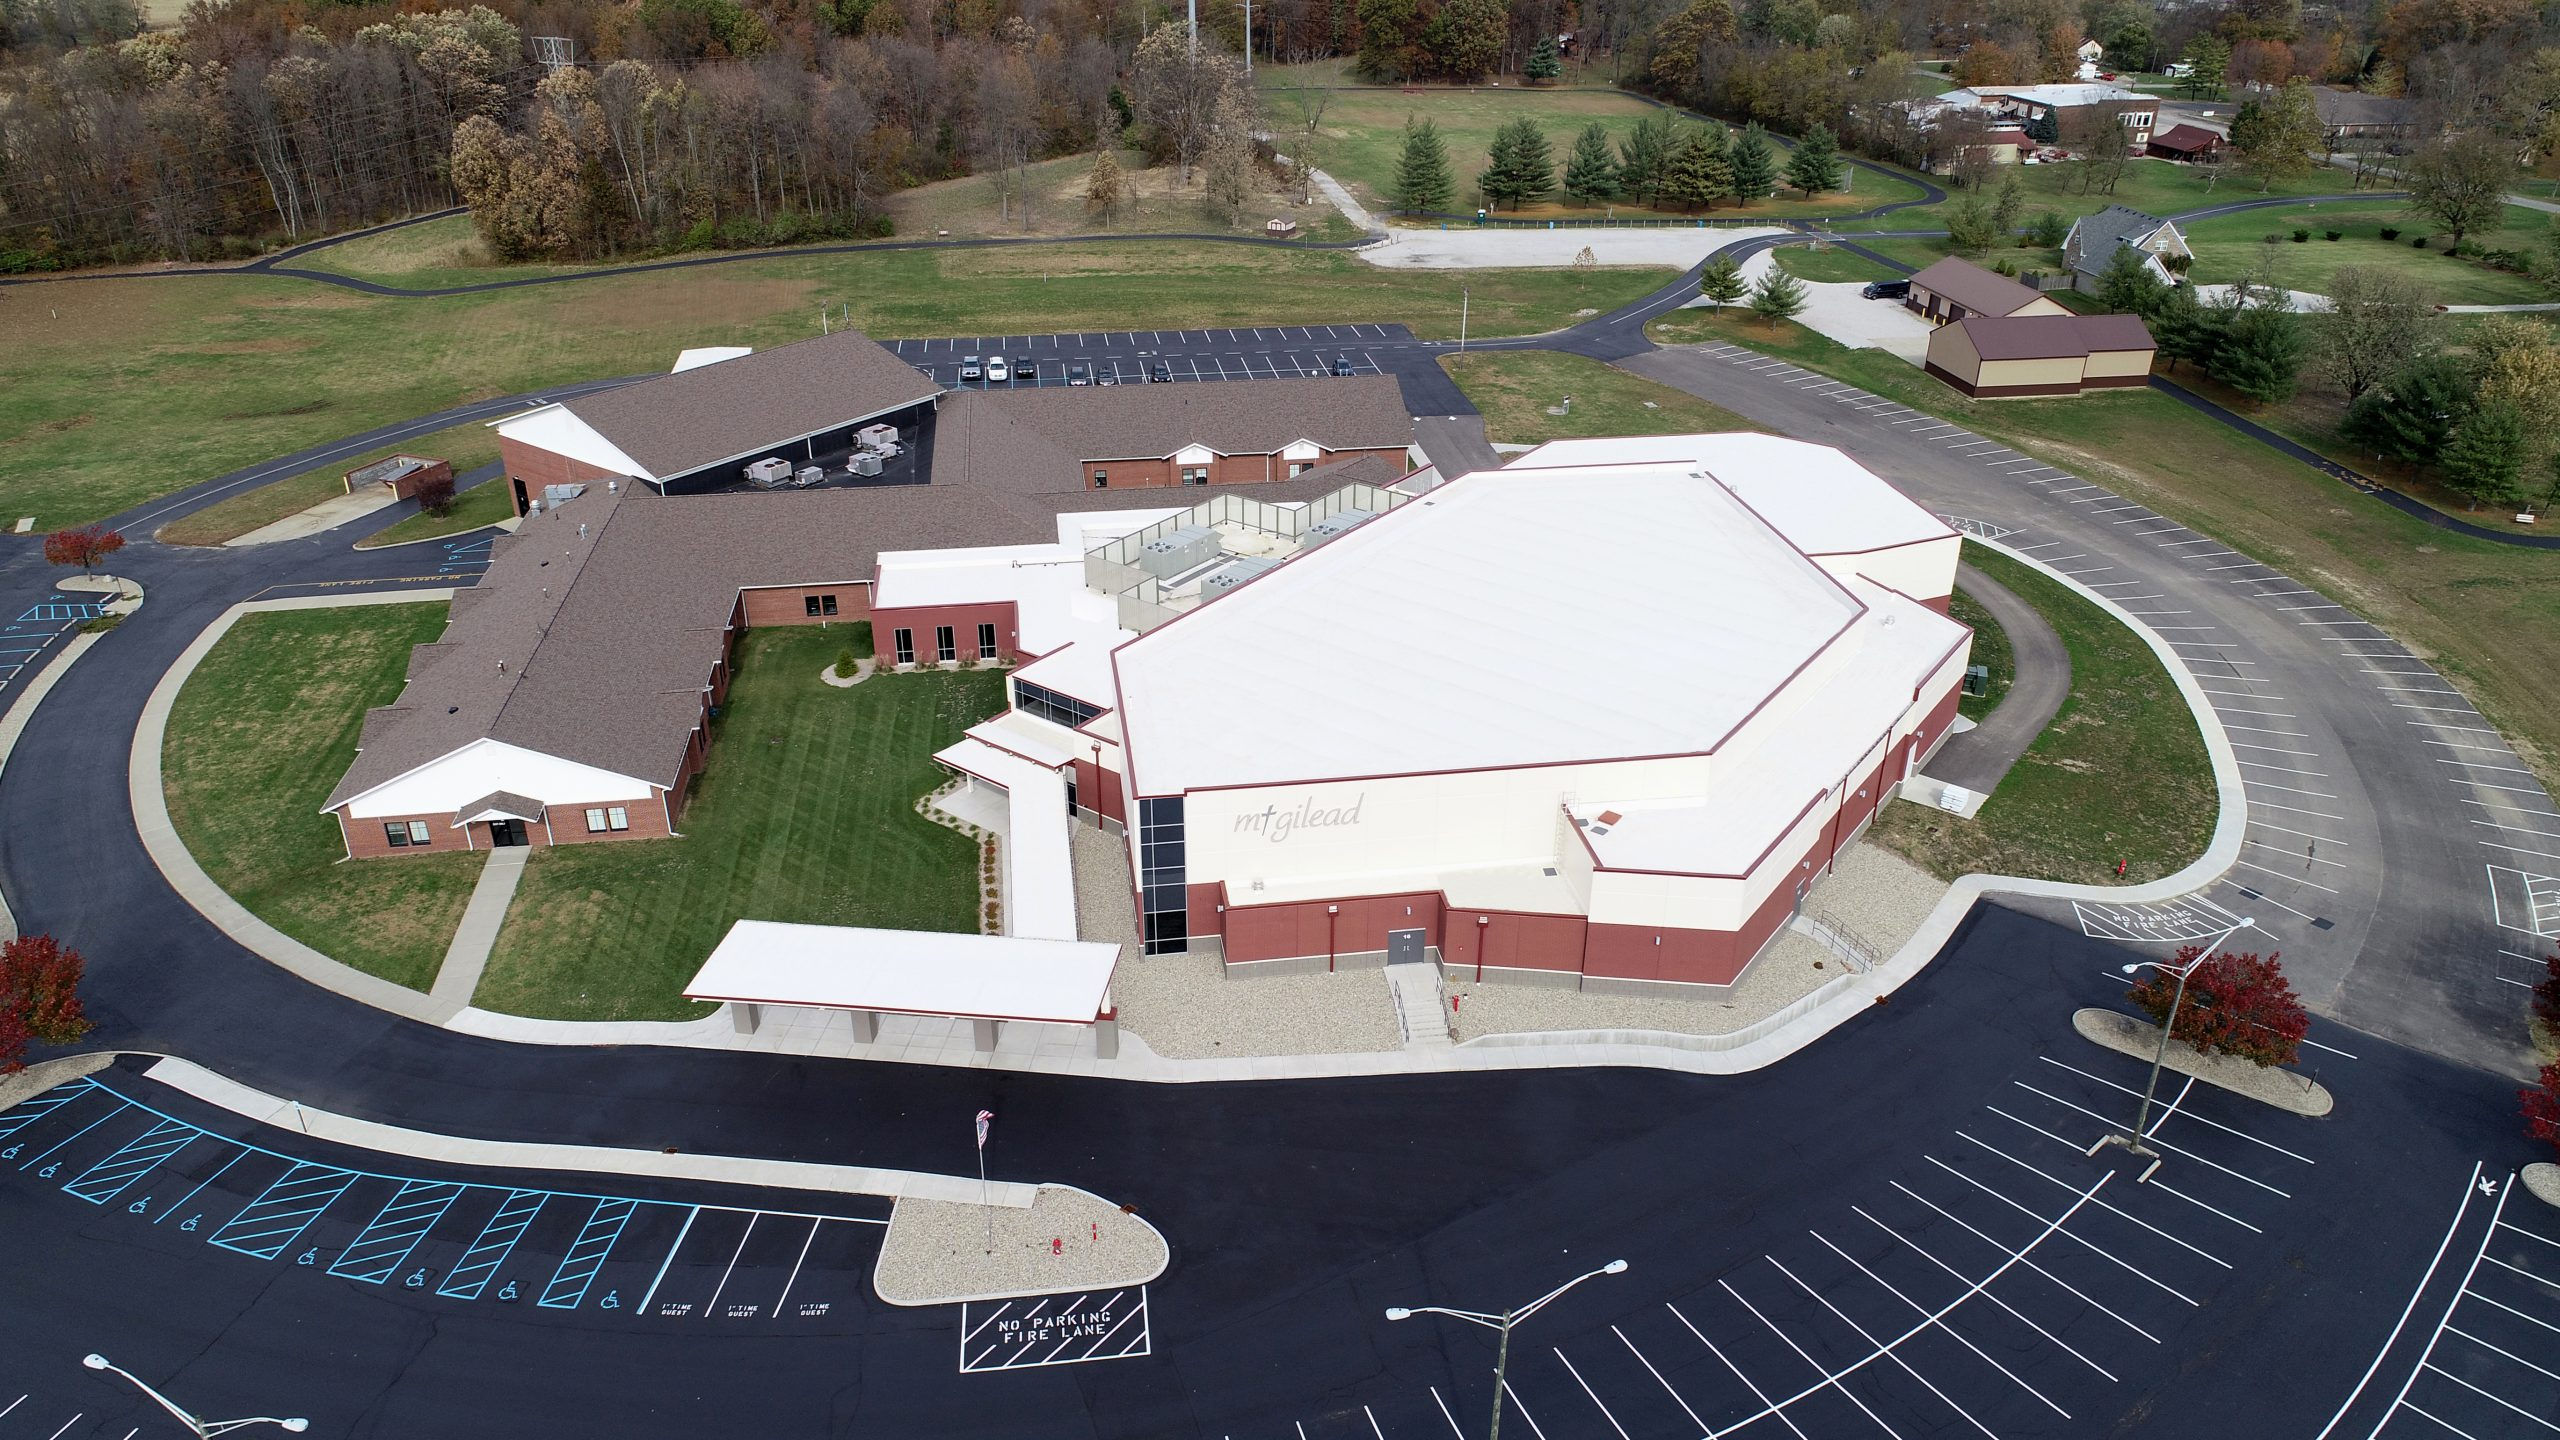 Mt Gilead Church commercial roofing project by ce reeve roofing in Indiana